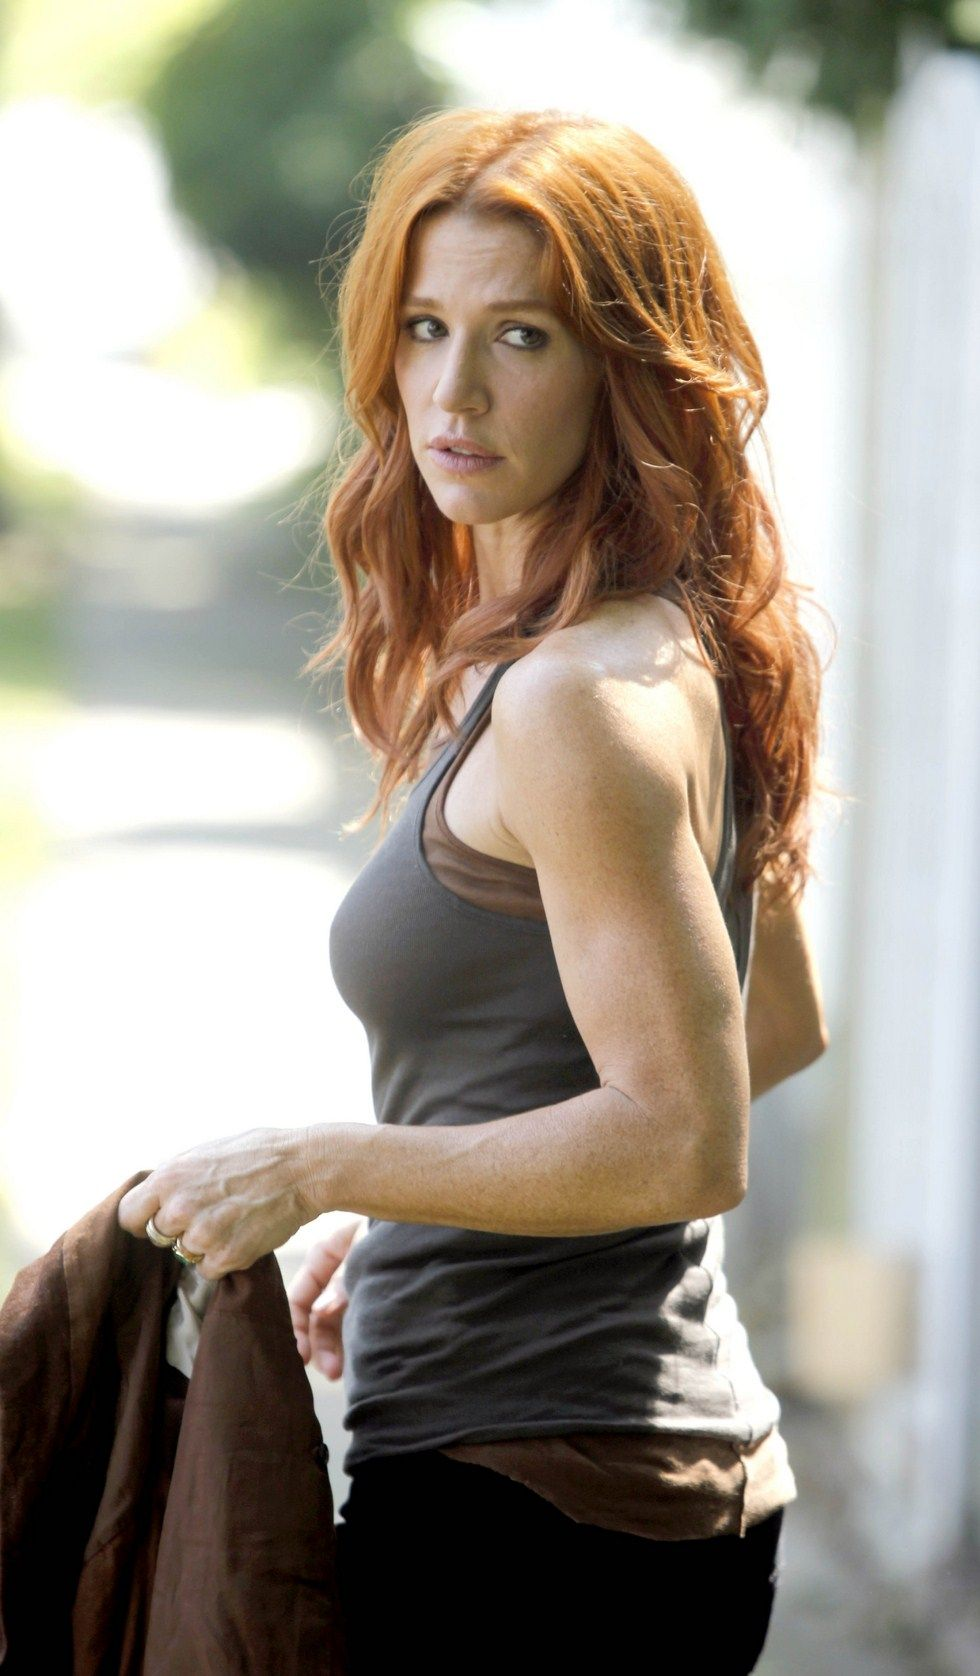 70+ Hot Pictures Of Poppy Montgomery Is No Less Than Slice